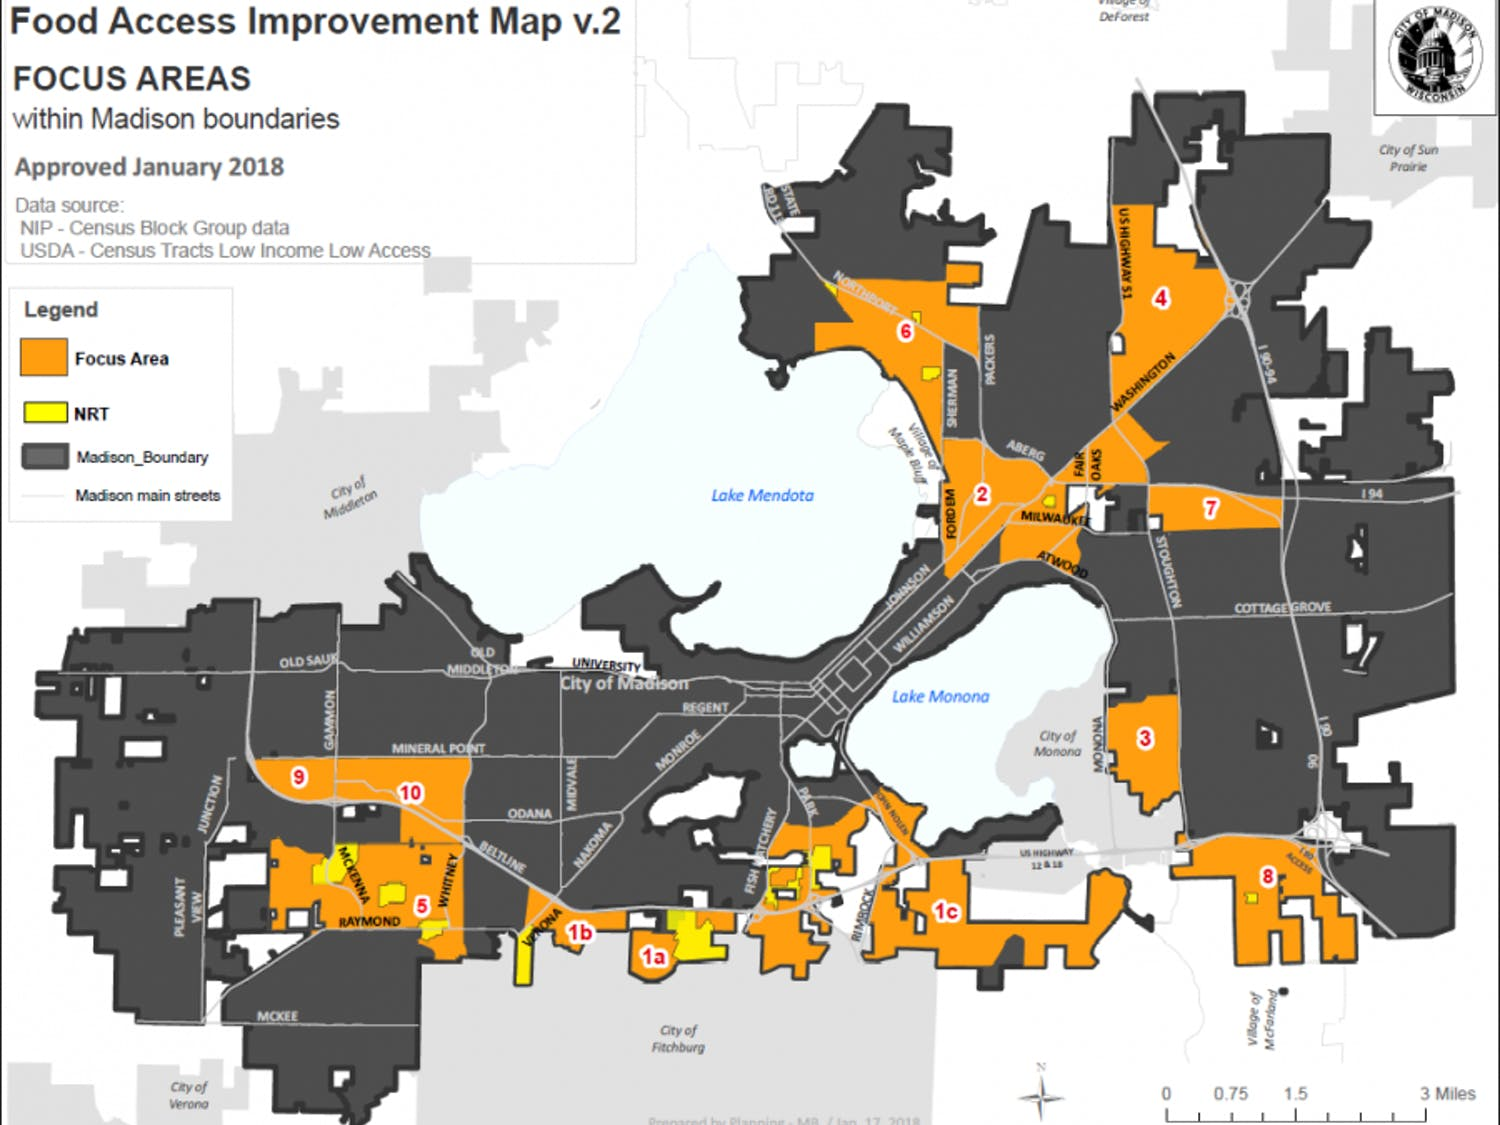 Graphic of focus areas for food access improvement in Madison as of 2018 by the city of Madison.